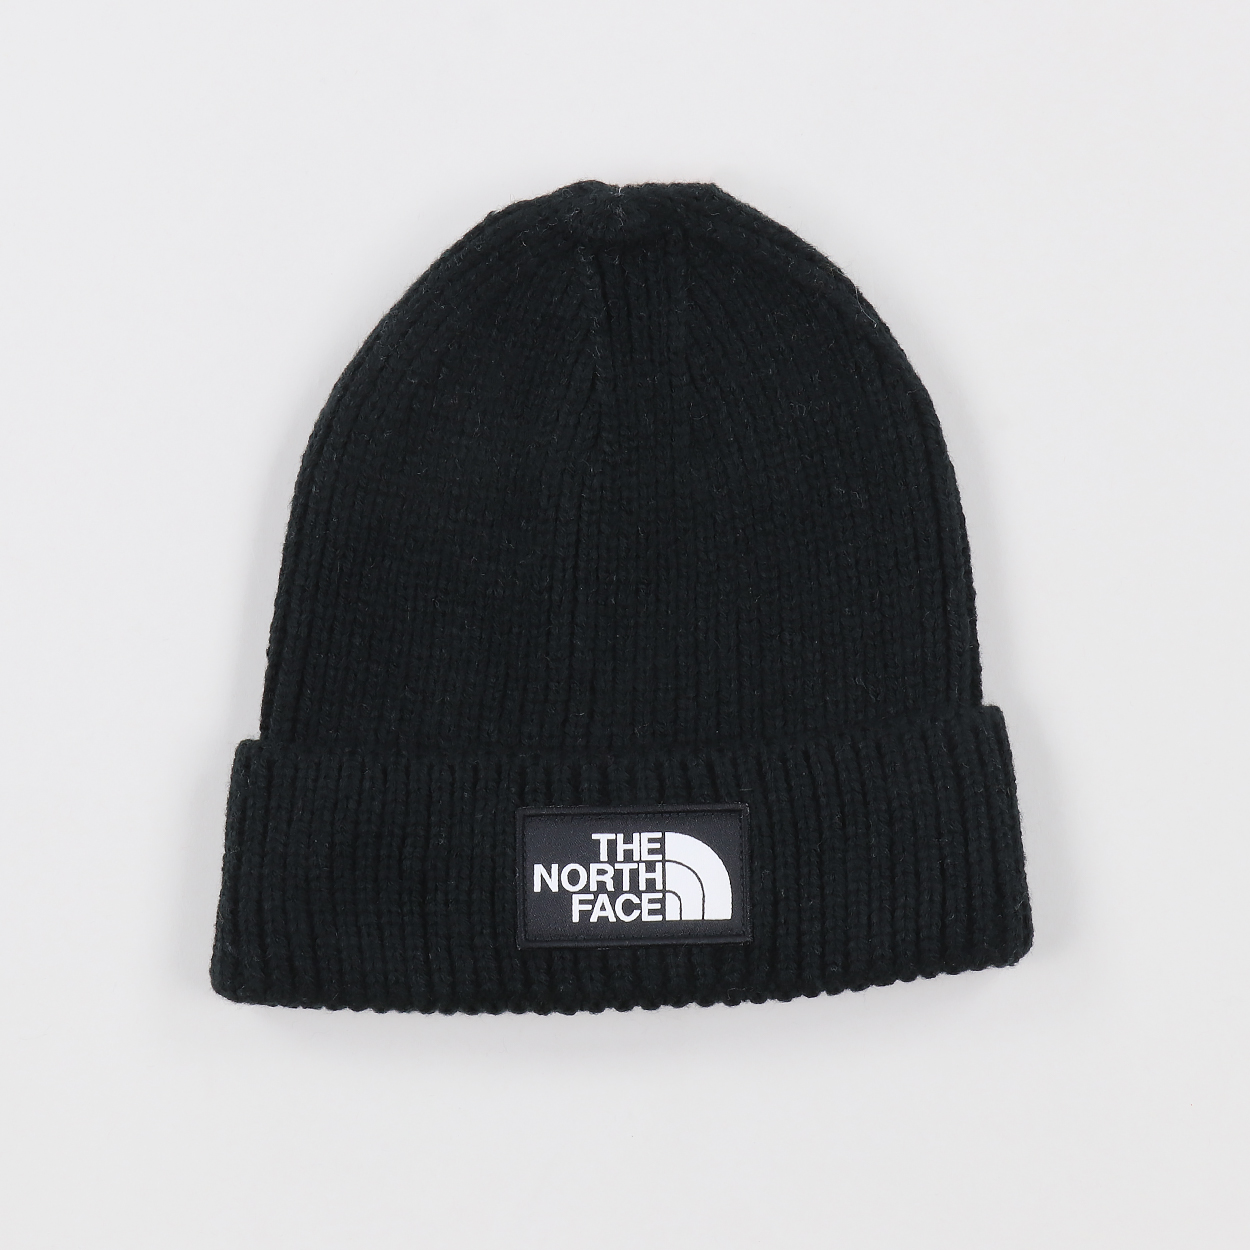 a59ee992 The North Face Mens Outdoor Logo Box Cuff Beanie Hat Black £22.50